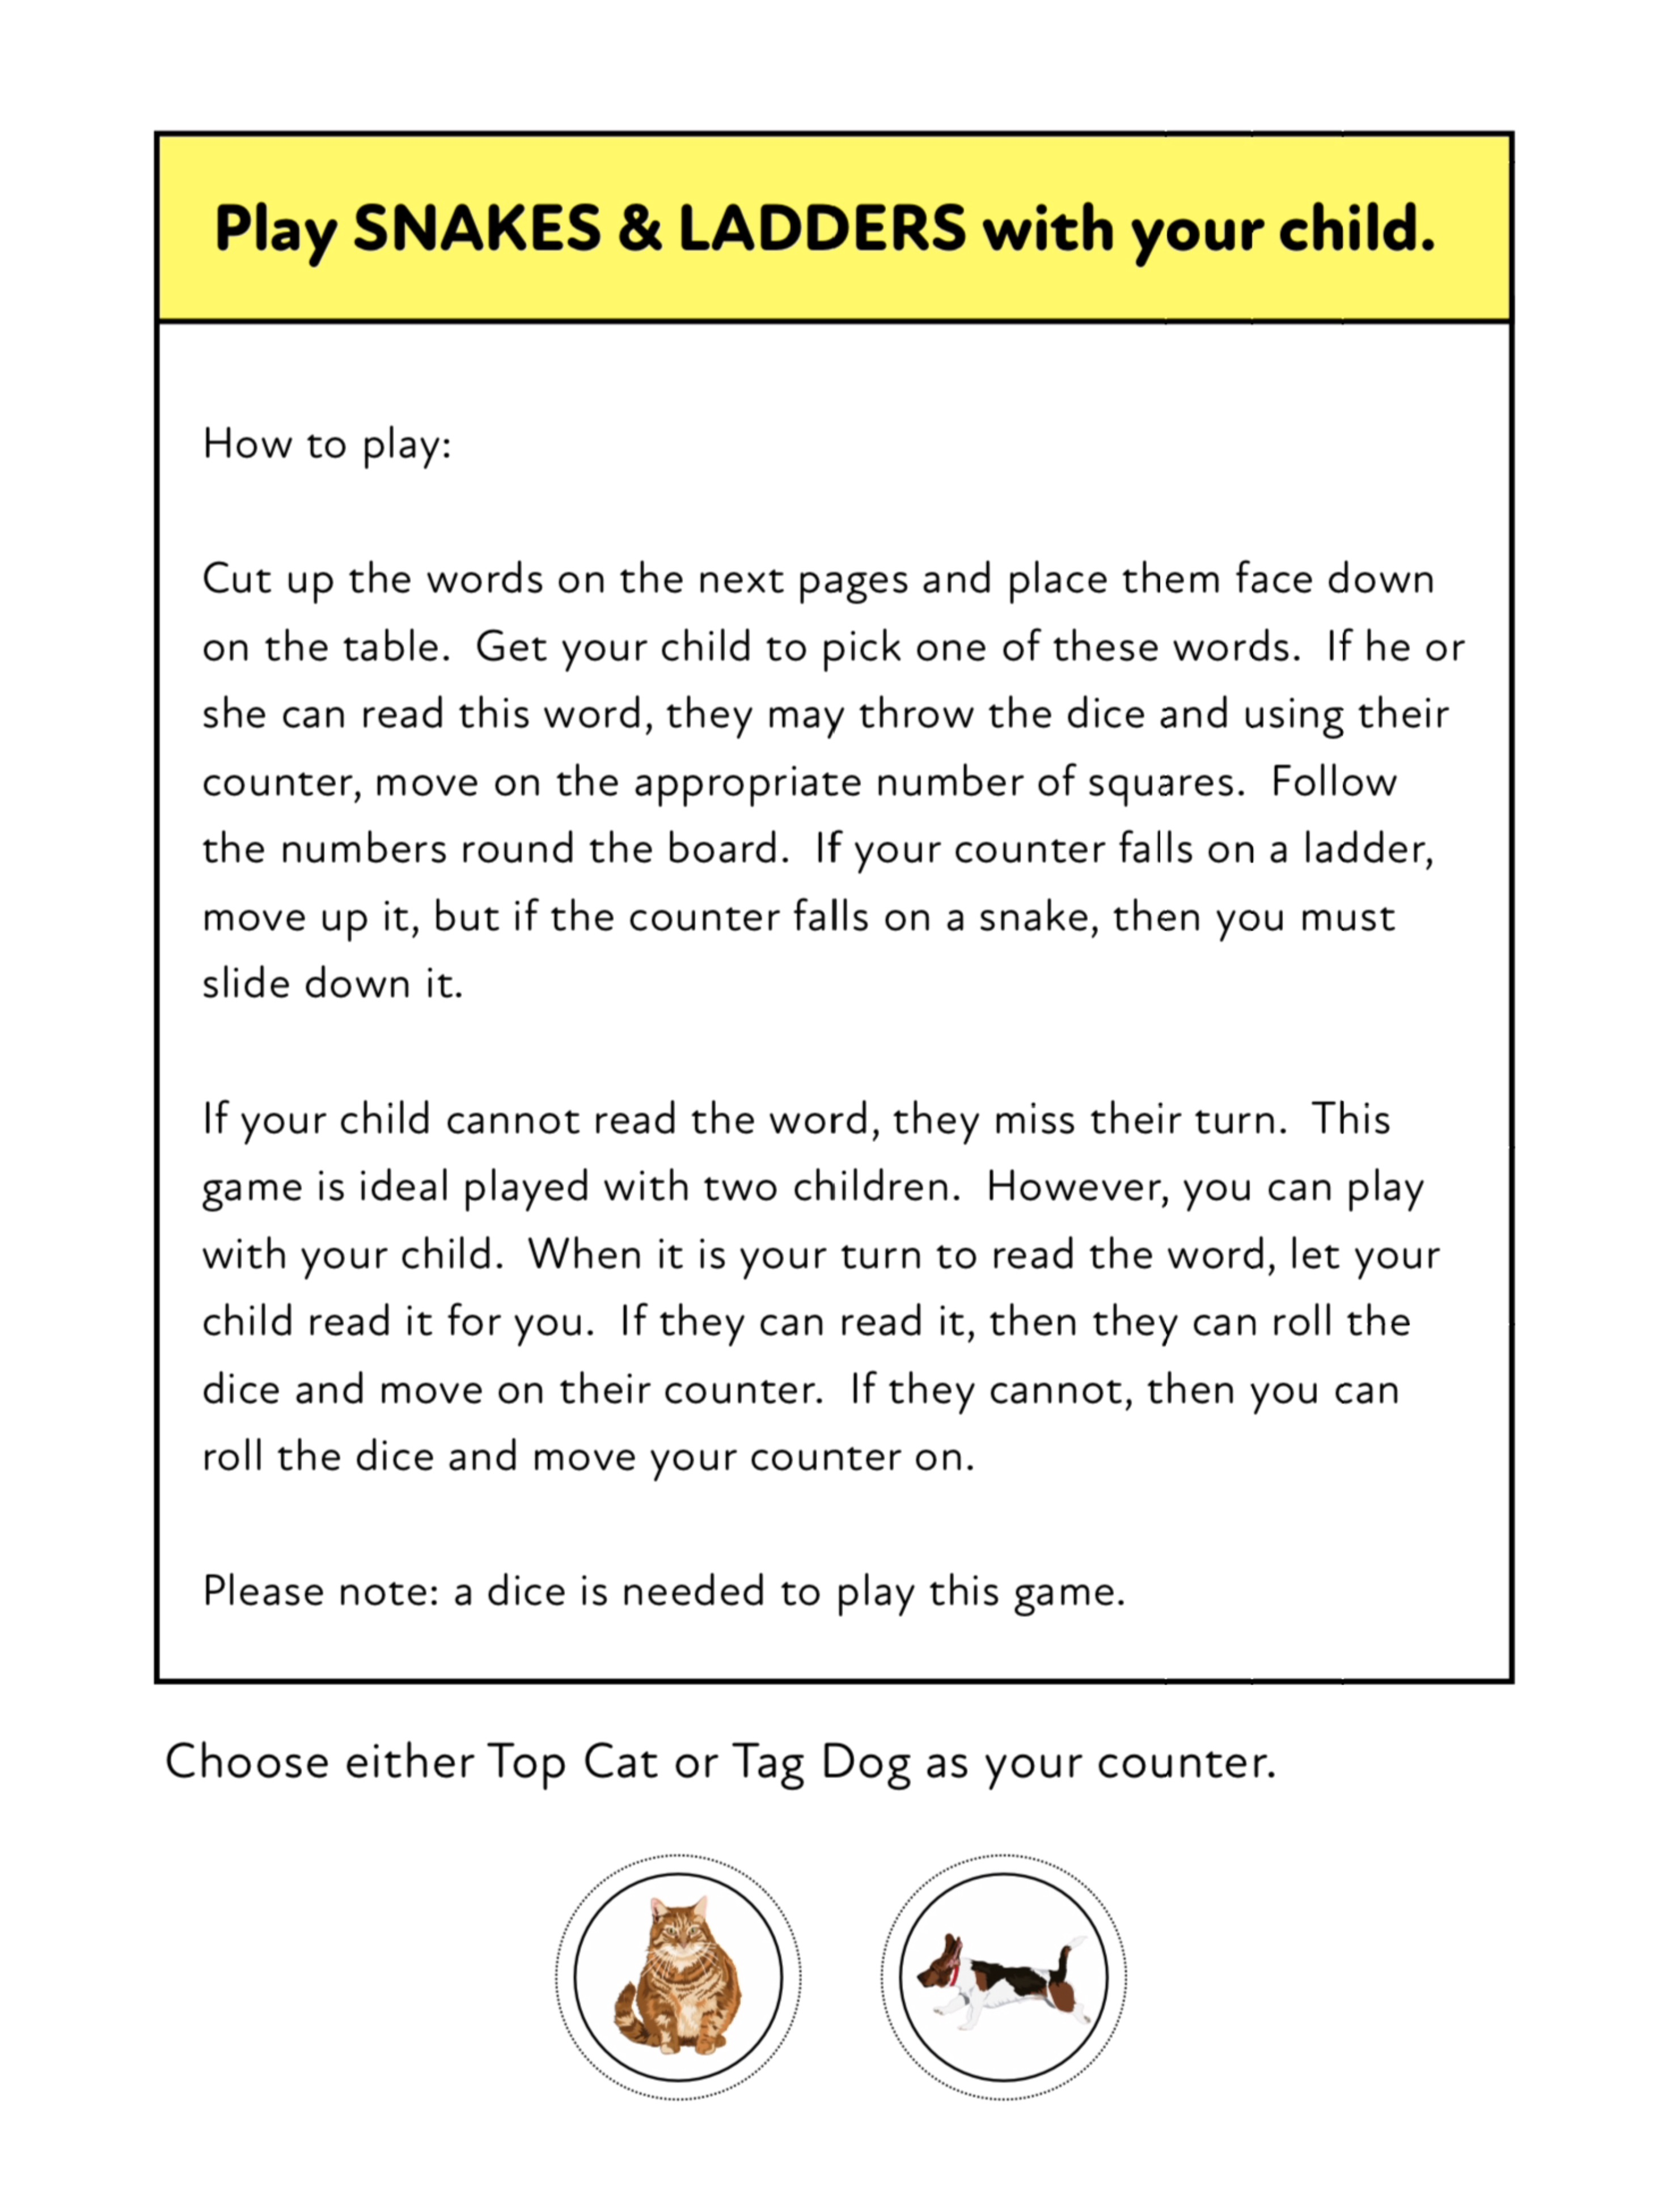 Play Snakes And Ladders: Fun Ways To Practise 3 Letter Phonic Words (3 +)